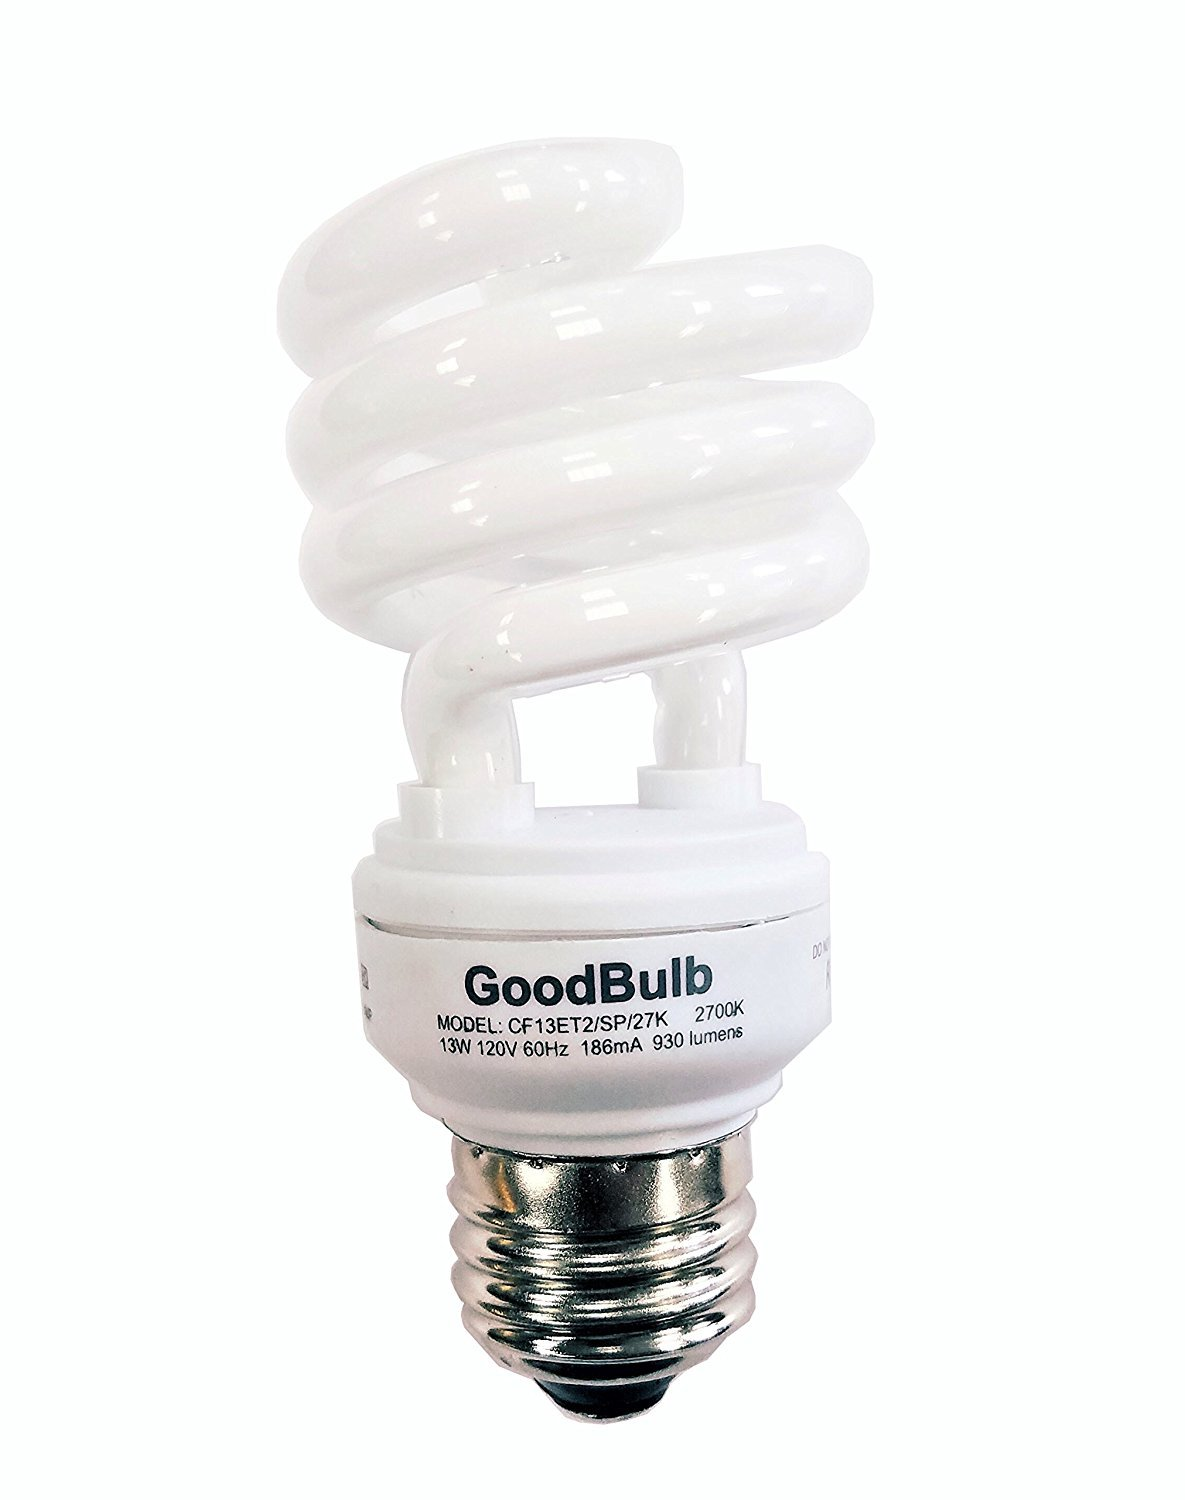 13 Watt Compact Fluorescent Bulb - Warm White Light Bulb - Ultra Mini Spiral CFL Light Bulbs - 2700K - E26 Base - 2 Pack - GoodBulb